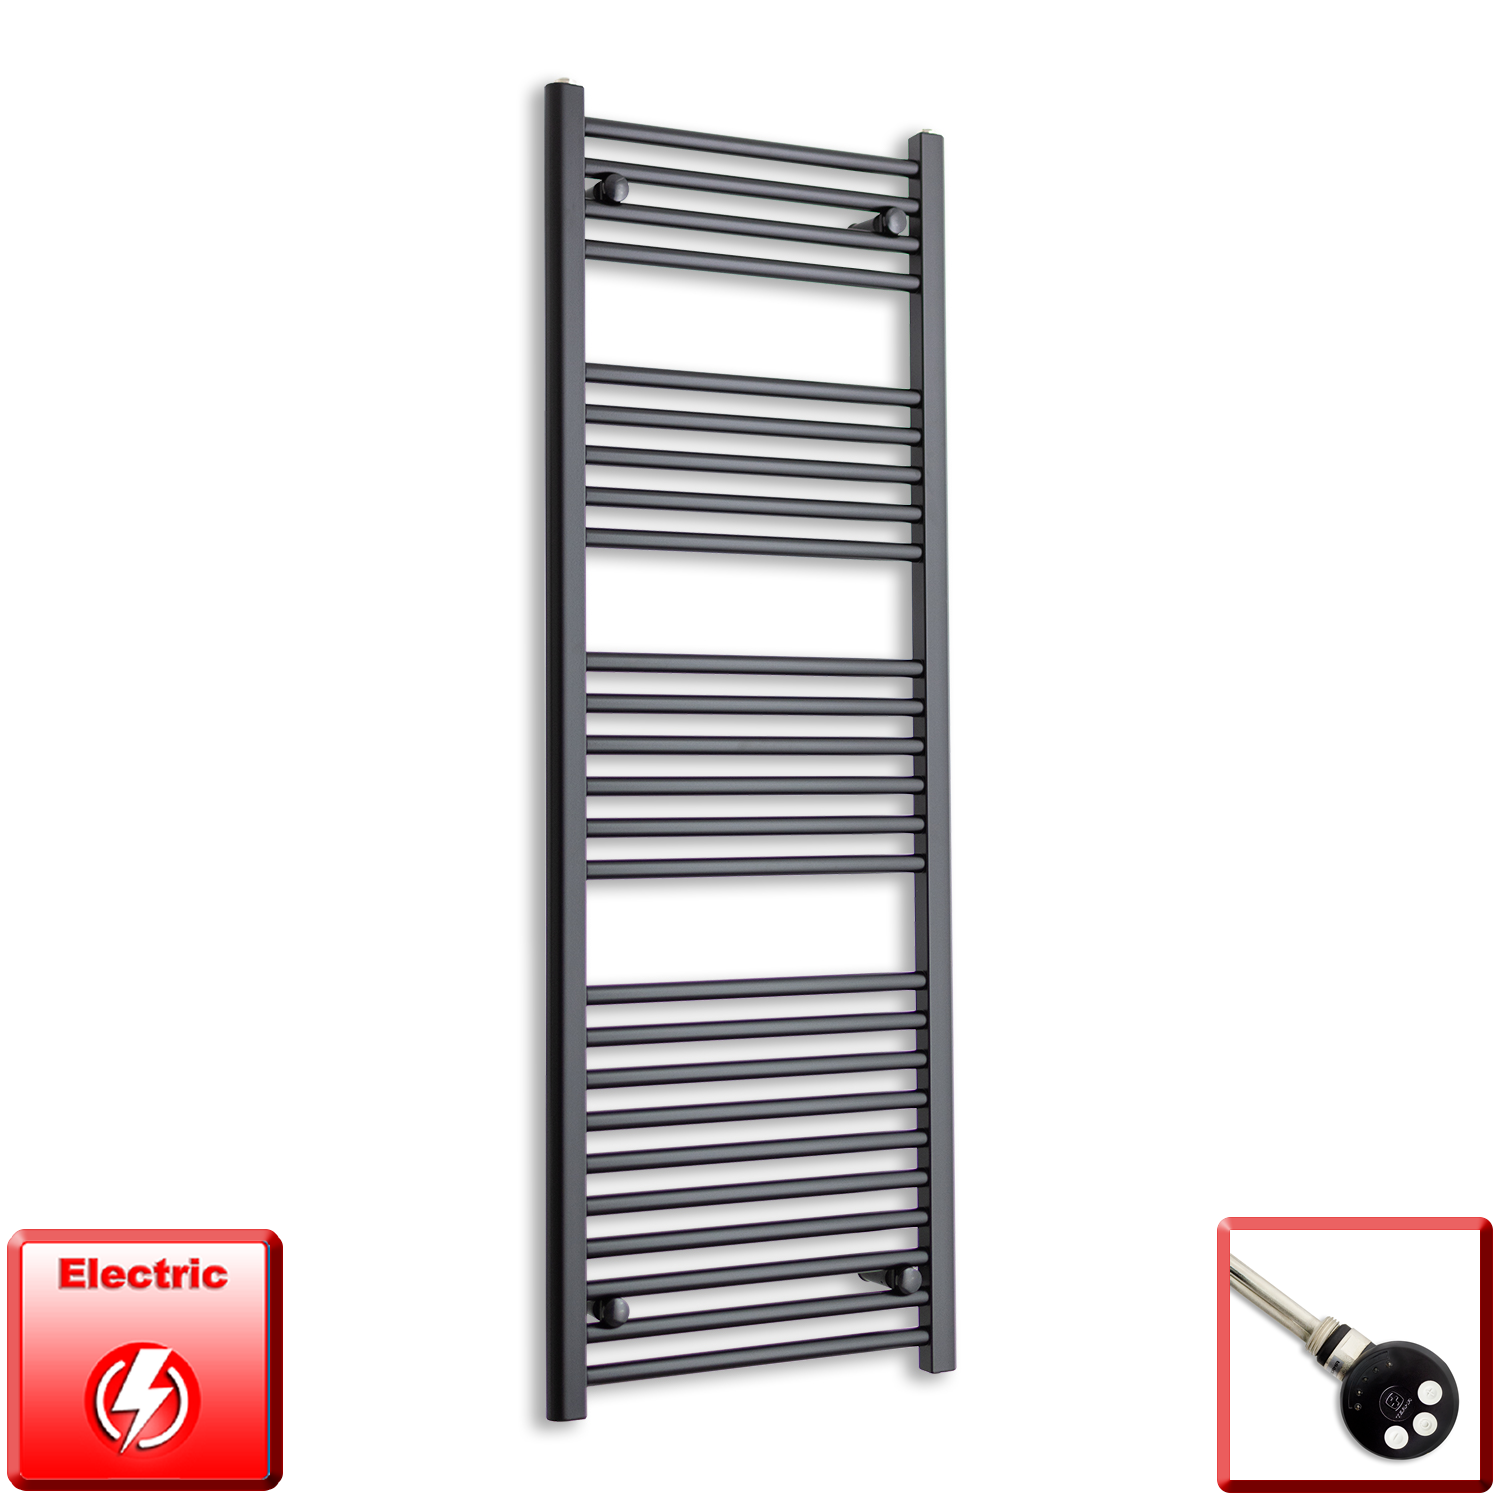 600mm Wide 1400mm High Pre-Filled Black Electric Towel Rail Radiator With Thermostatic MEG Element